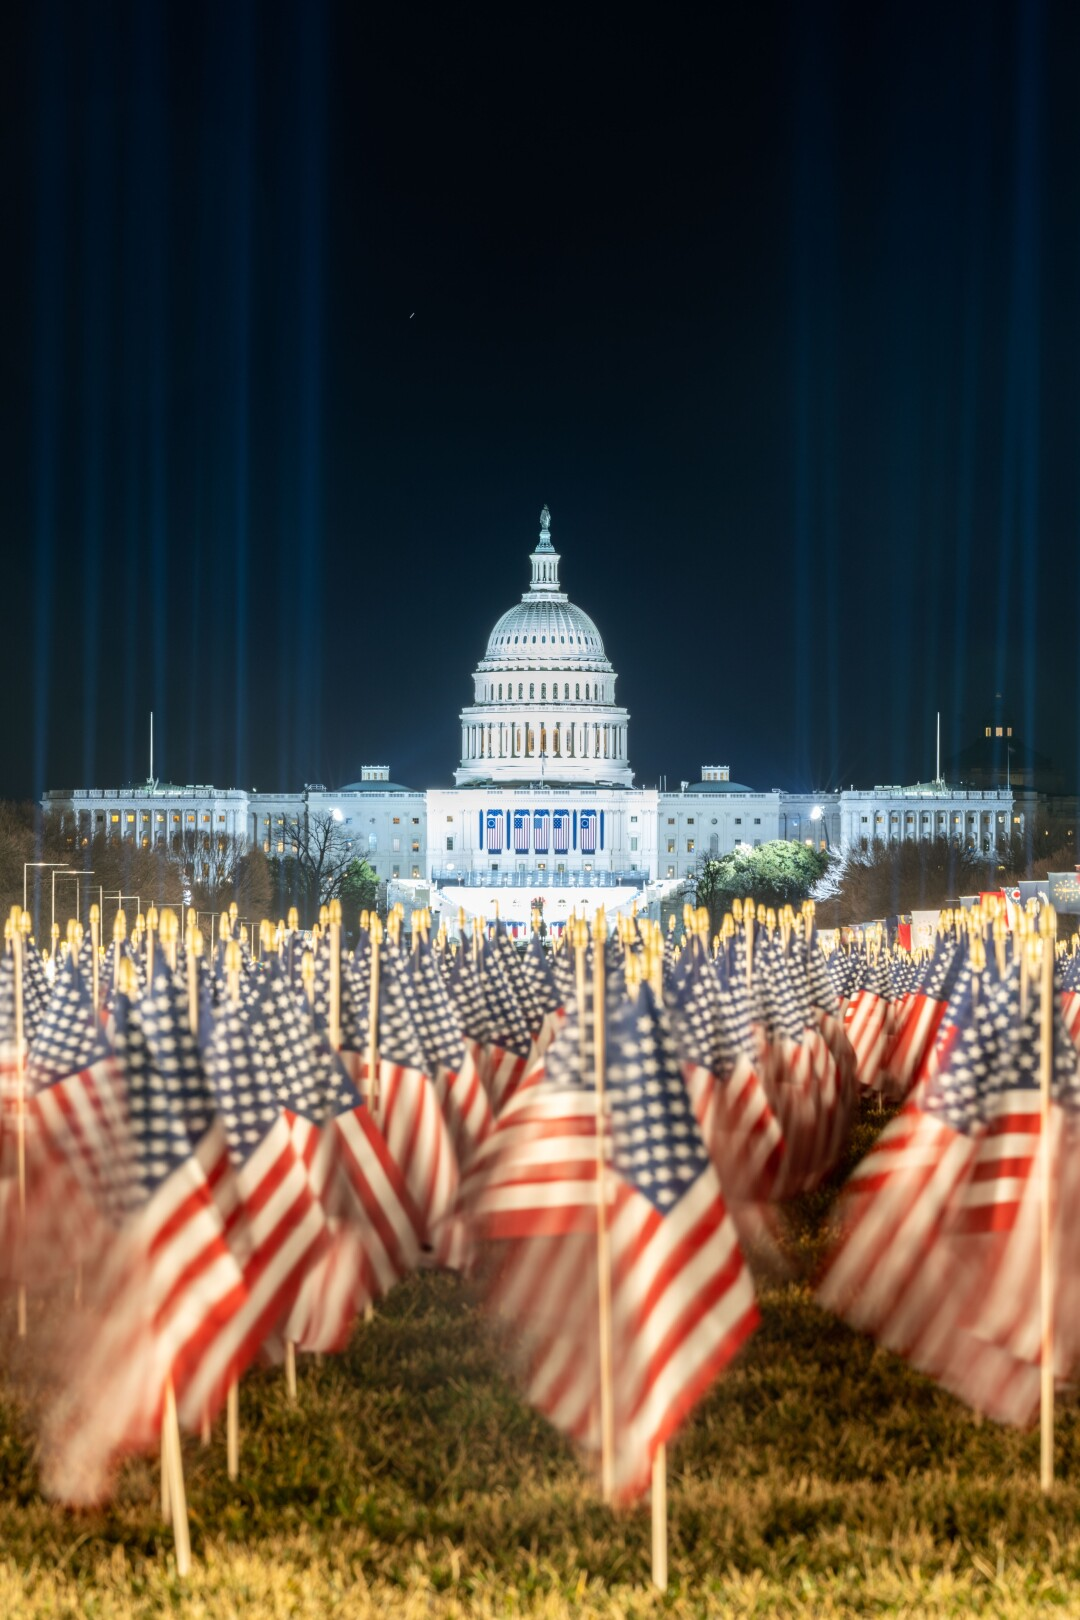 The National Mall decorated with U.S. flags